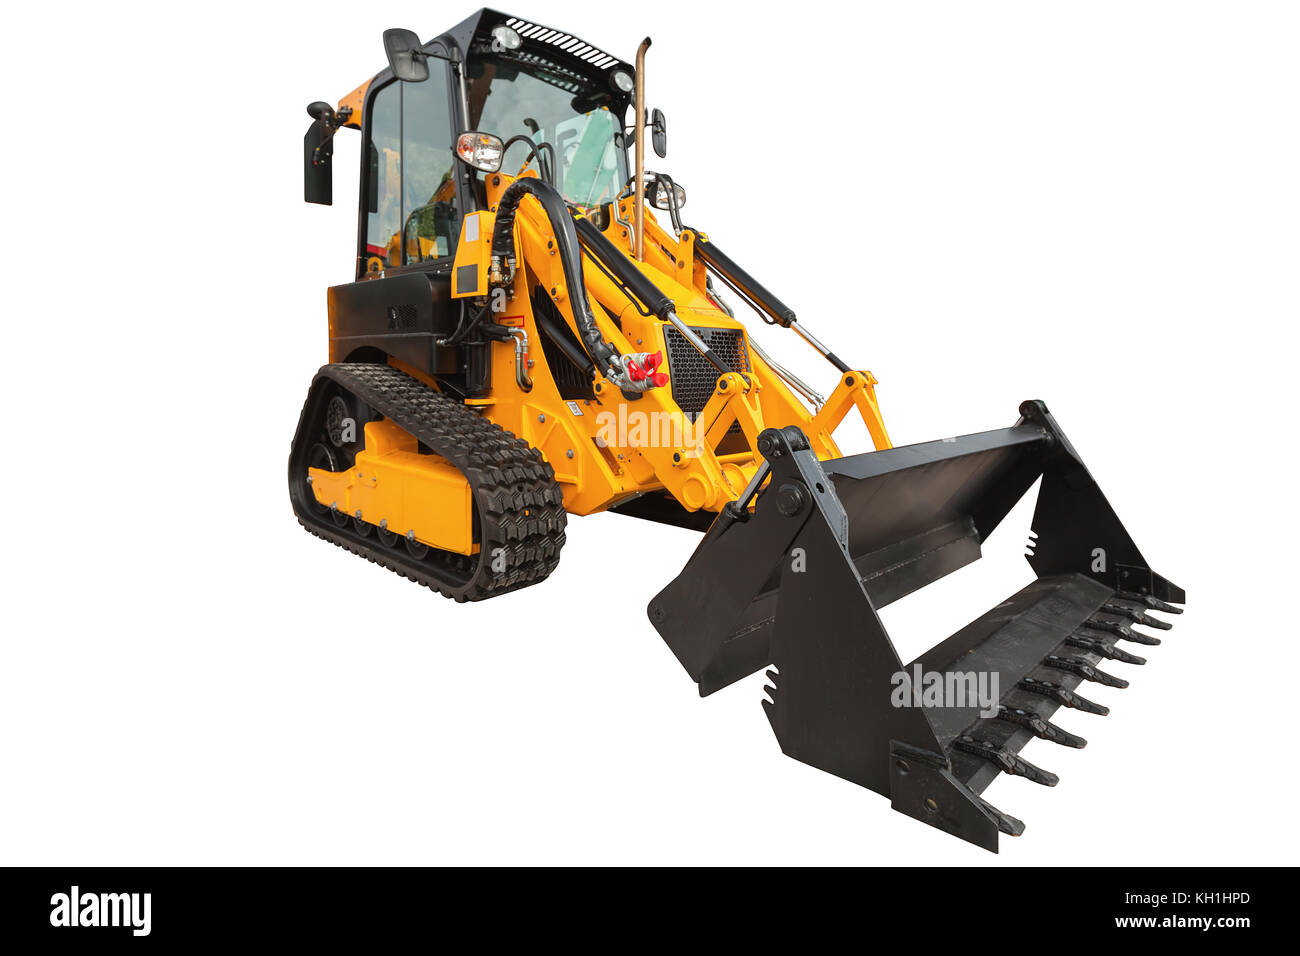 Backhoe loader or bulldozer - excavator with clipping path isolated on white background - Stock Image